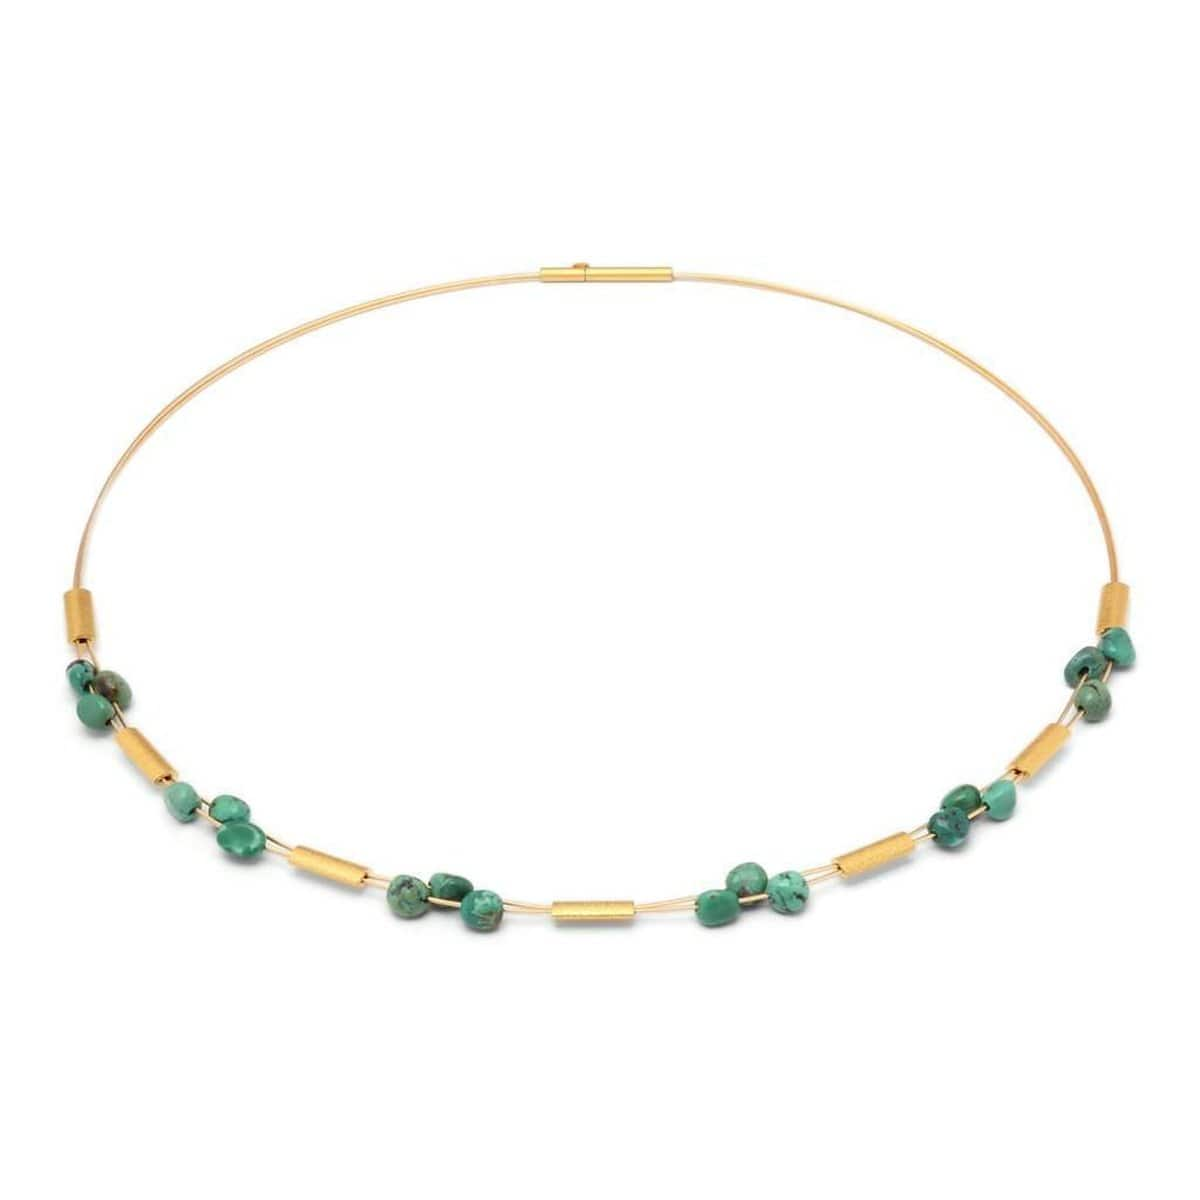 Tripota Green Turquoise Necklace - 85331356-Bernd Wolf-Renee Taylor Gallery